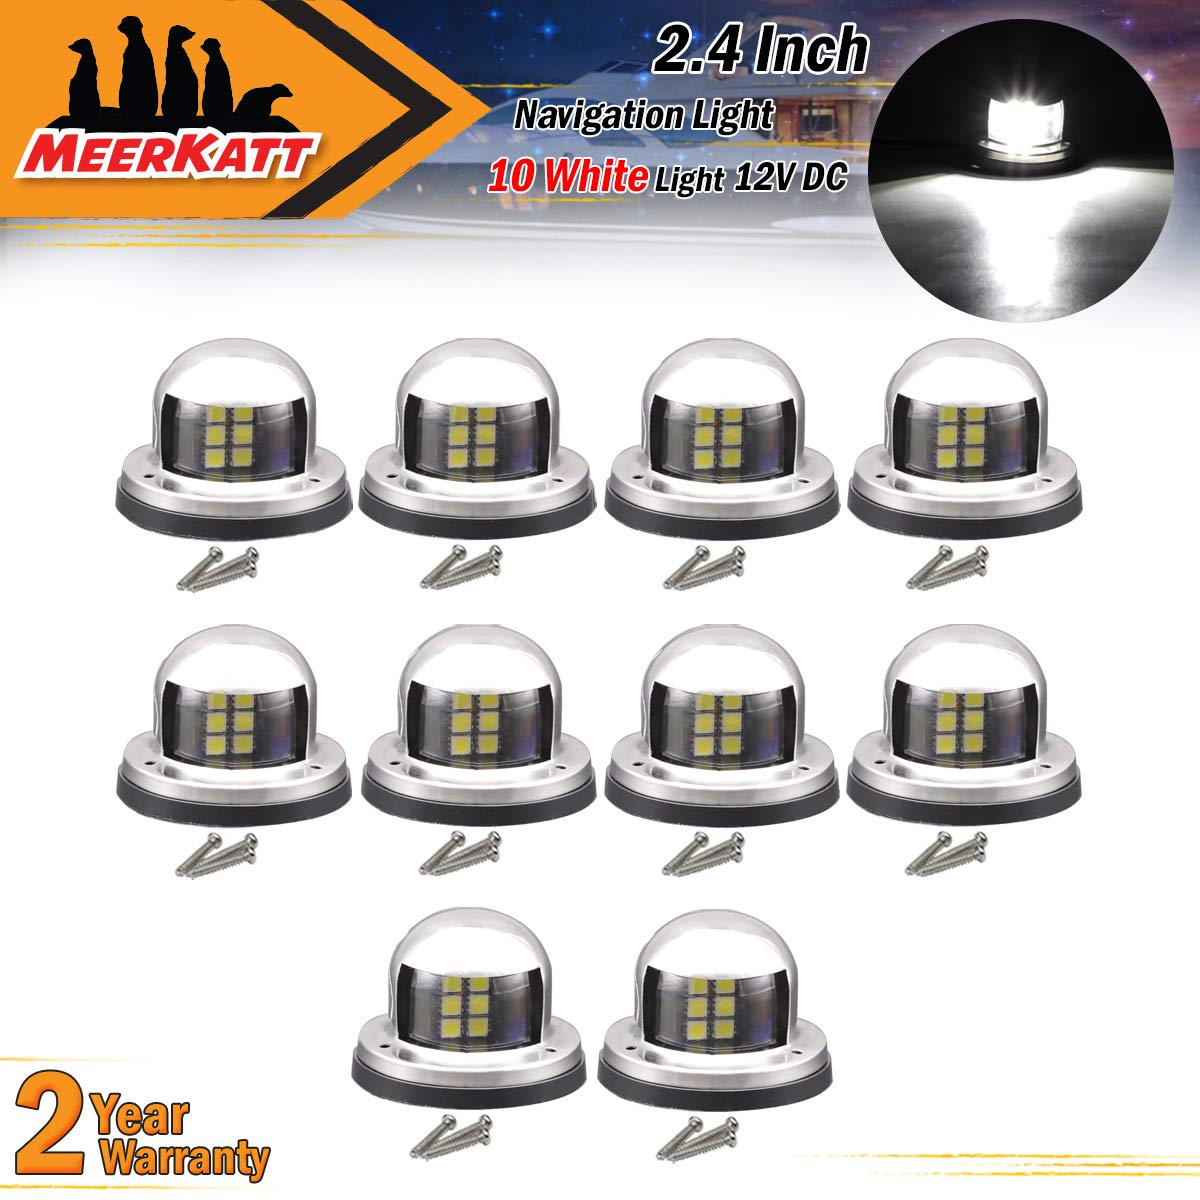 Pack of 10 Meerkatt White Clearance Lamp Marine LED Mount Navigation Bow Lights Waterproof w//Stainless Steel Port Starboard Front Rear Fishing Boat Yacht Vessel Viking Skeeter 12v DC 8 Diodes RR12